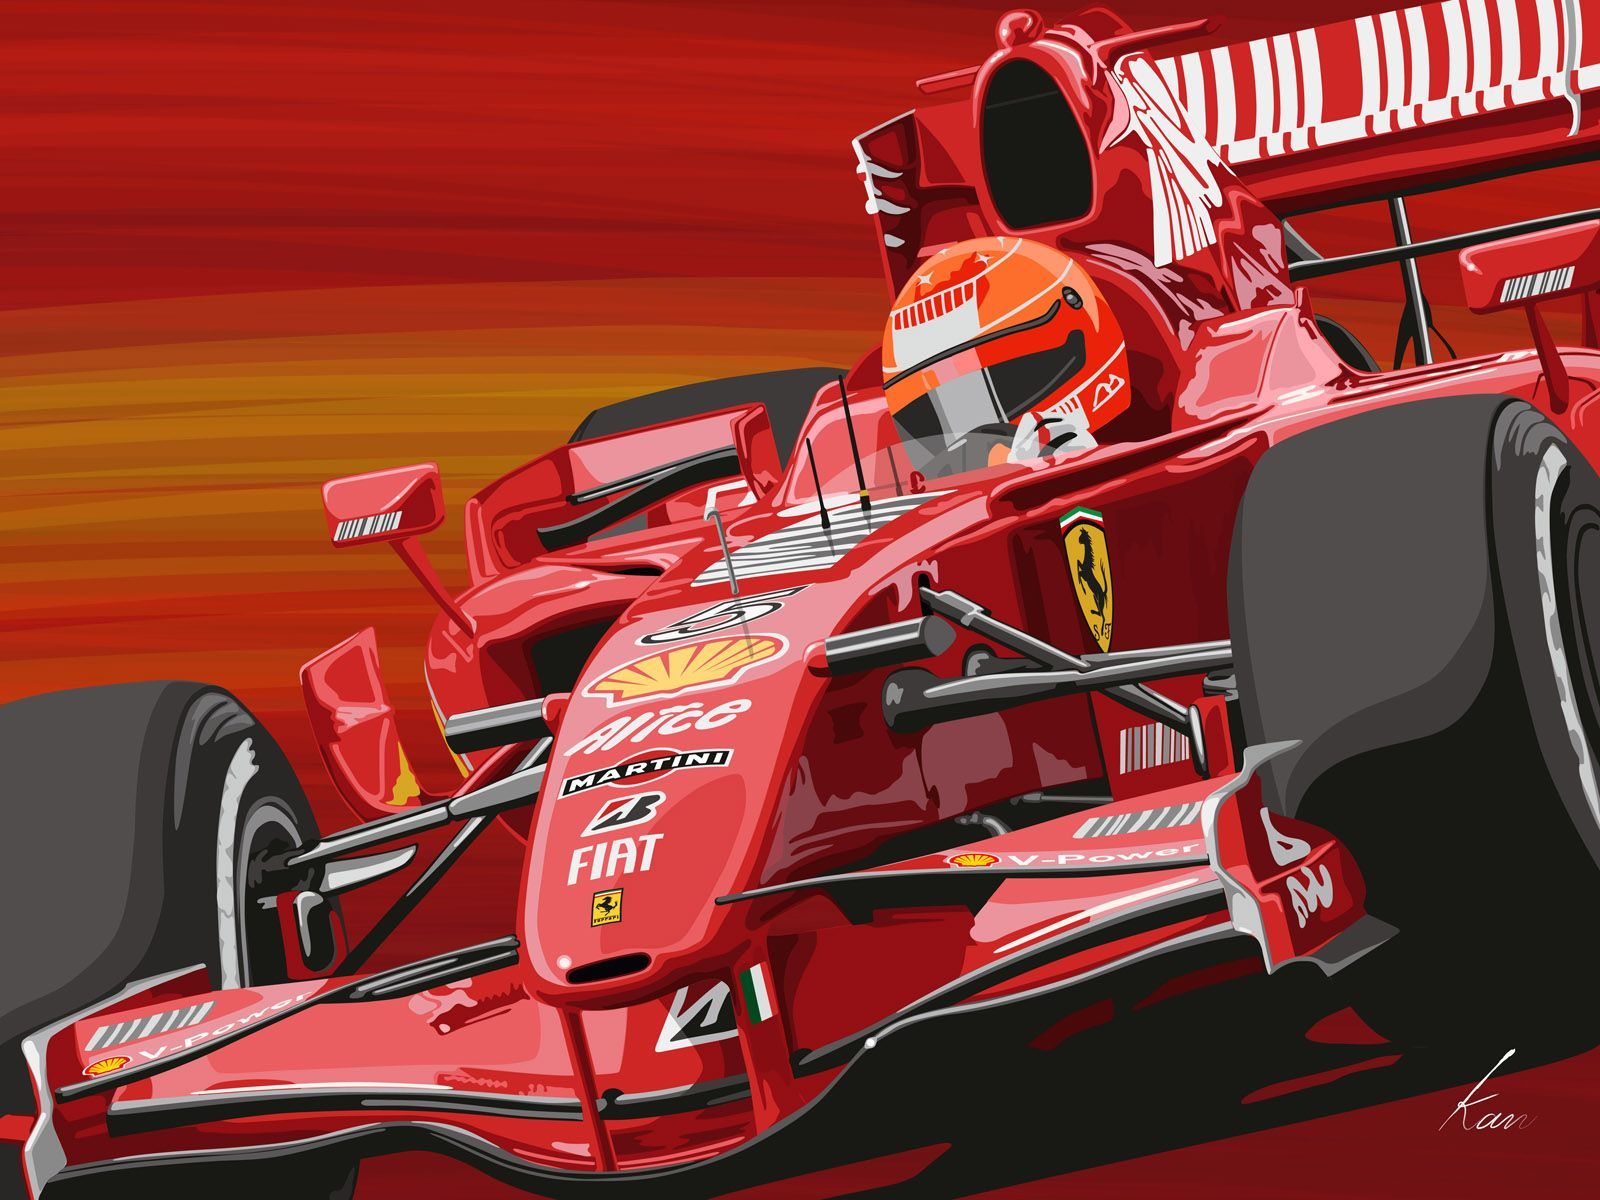 michael schumacher ferrari f1 grand prix posters. Black Bedroom Furniture Sets. Home Design Ideas